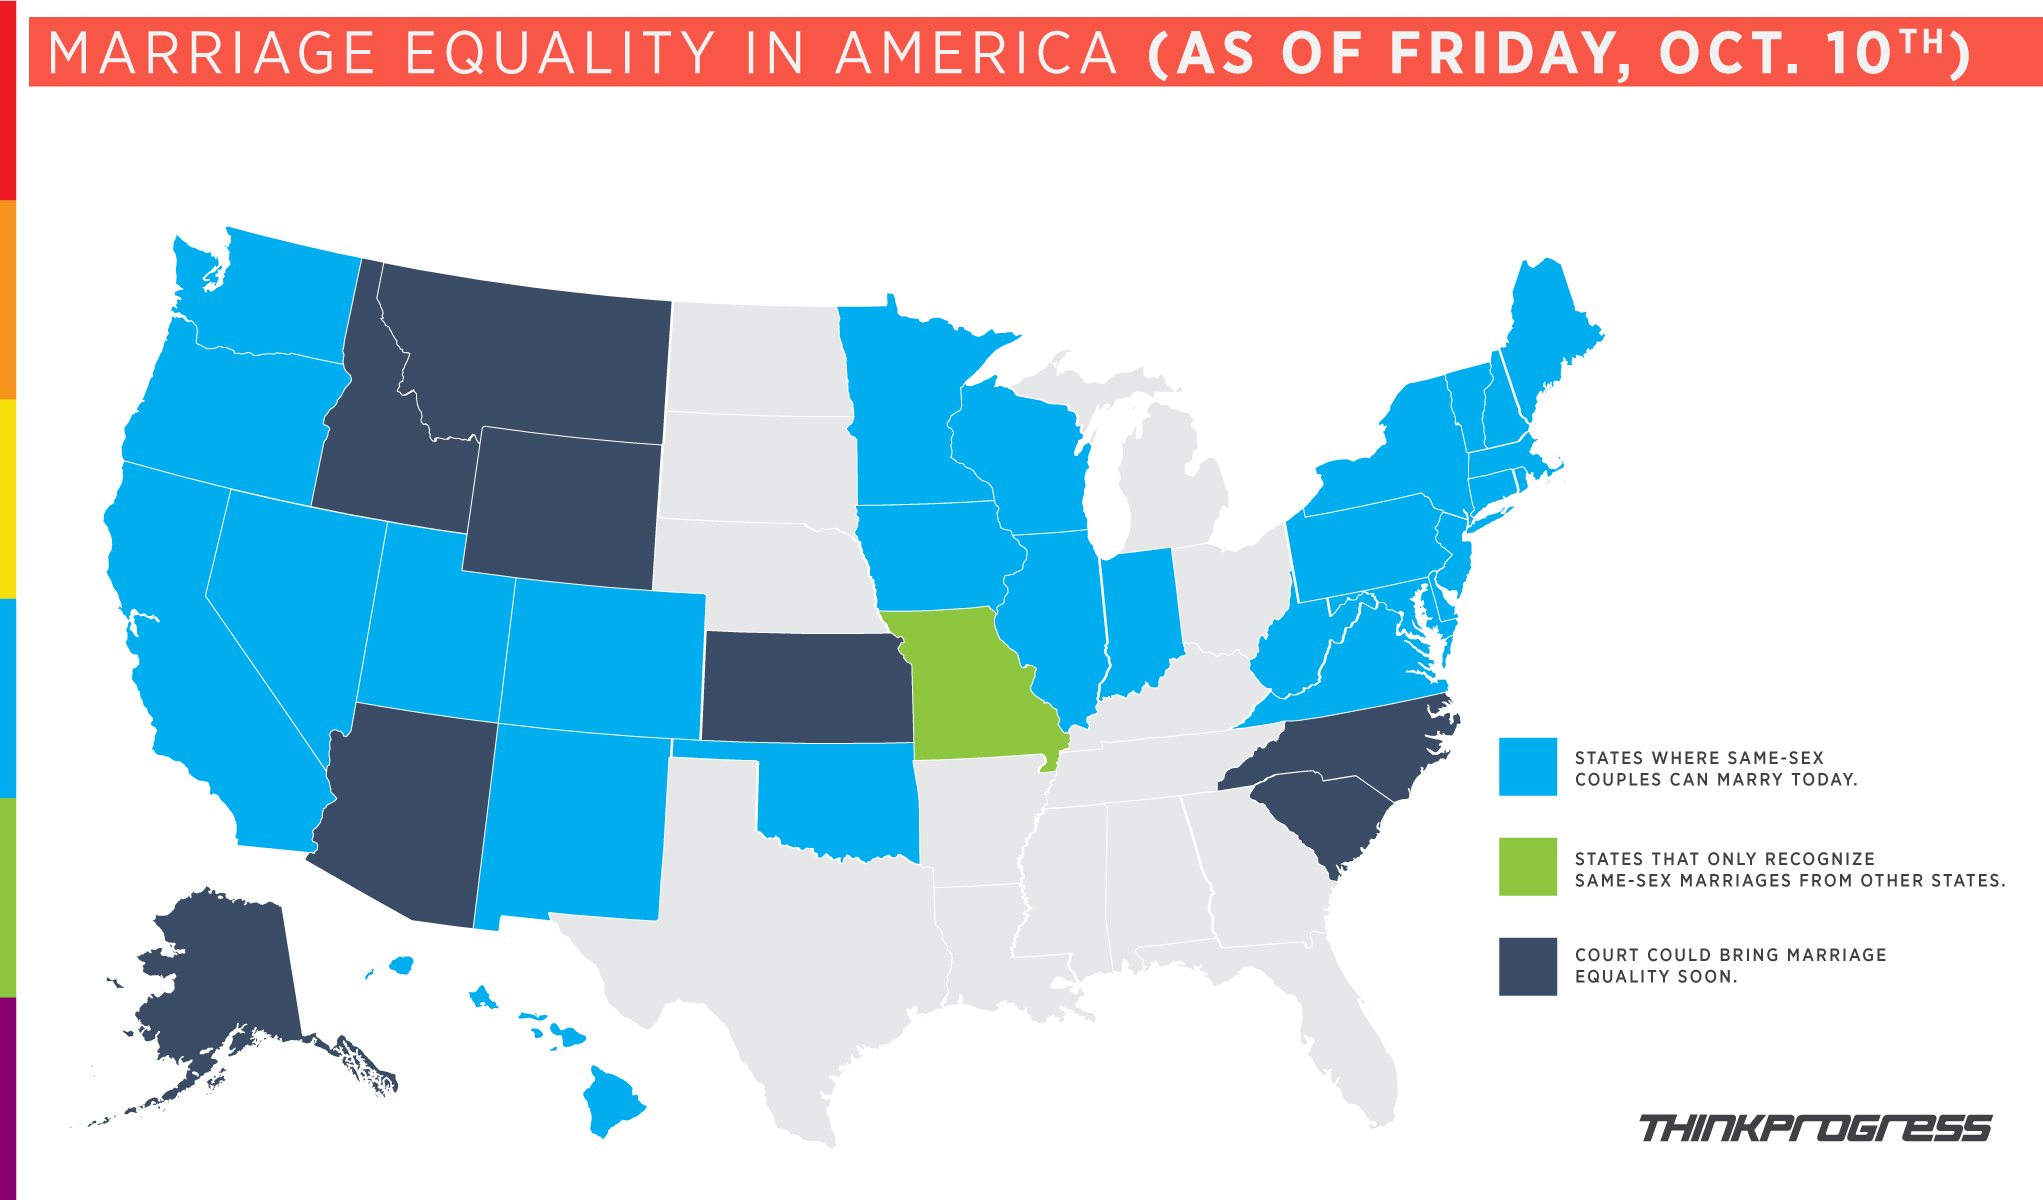 a beautiful map thinkprogress made for us friday morning was outdated byfriday night oops. what the heck is going on everywhere a marriage equality